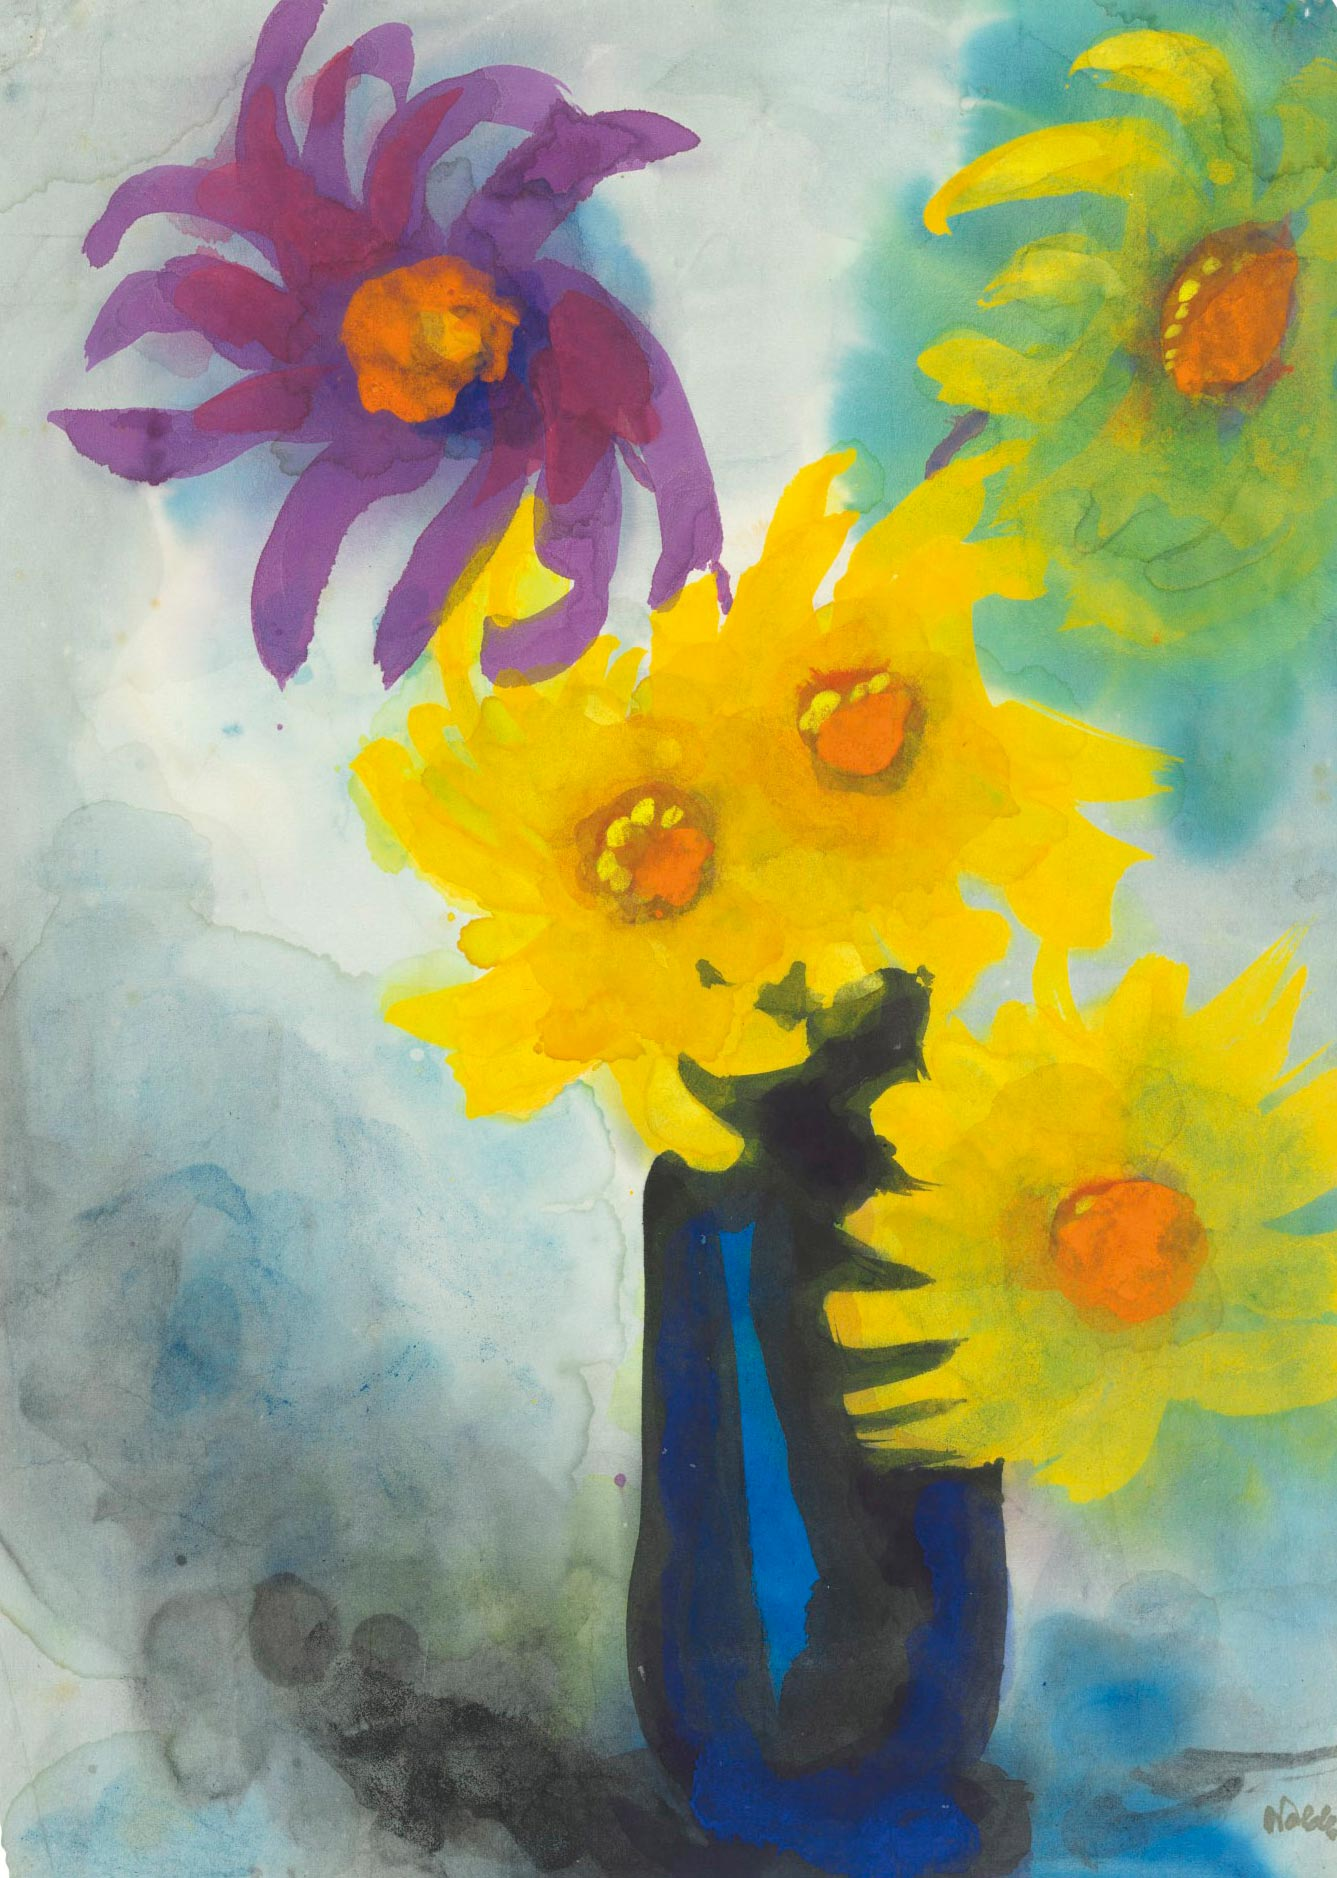 Emil Nolde (1867-1956), Dahlien (gelb un violett) in blauer Vase, Executed circa 1930-1935. Estimate £60,000-80,000. This work is offered in the Impressionist & Modern Art Works on Paper Sale on 19 June at Christies London.